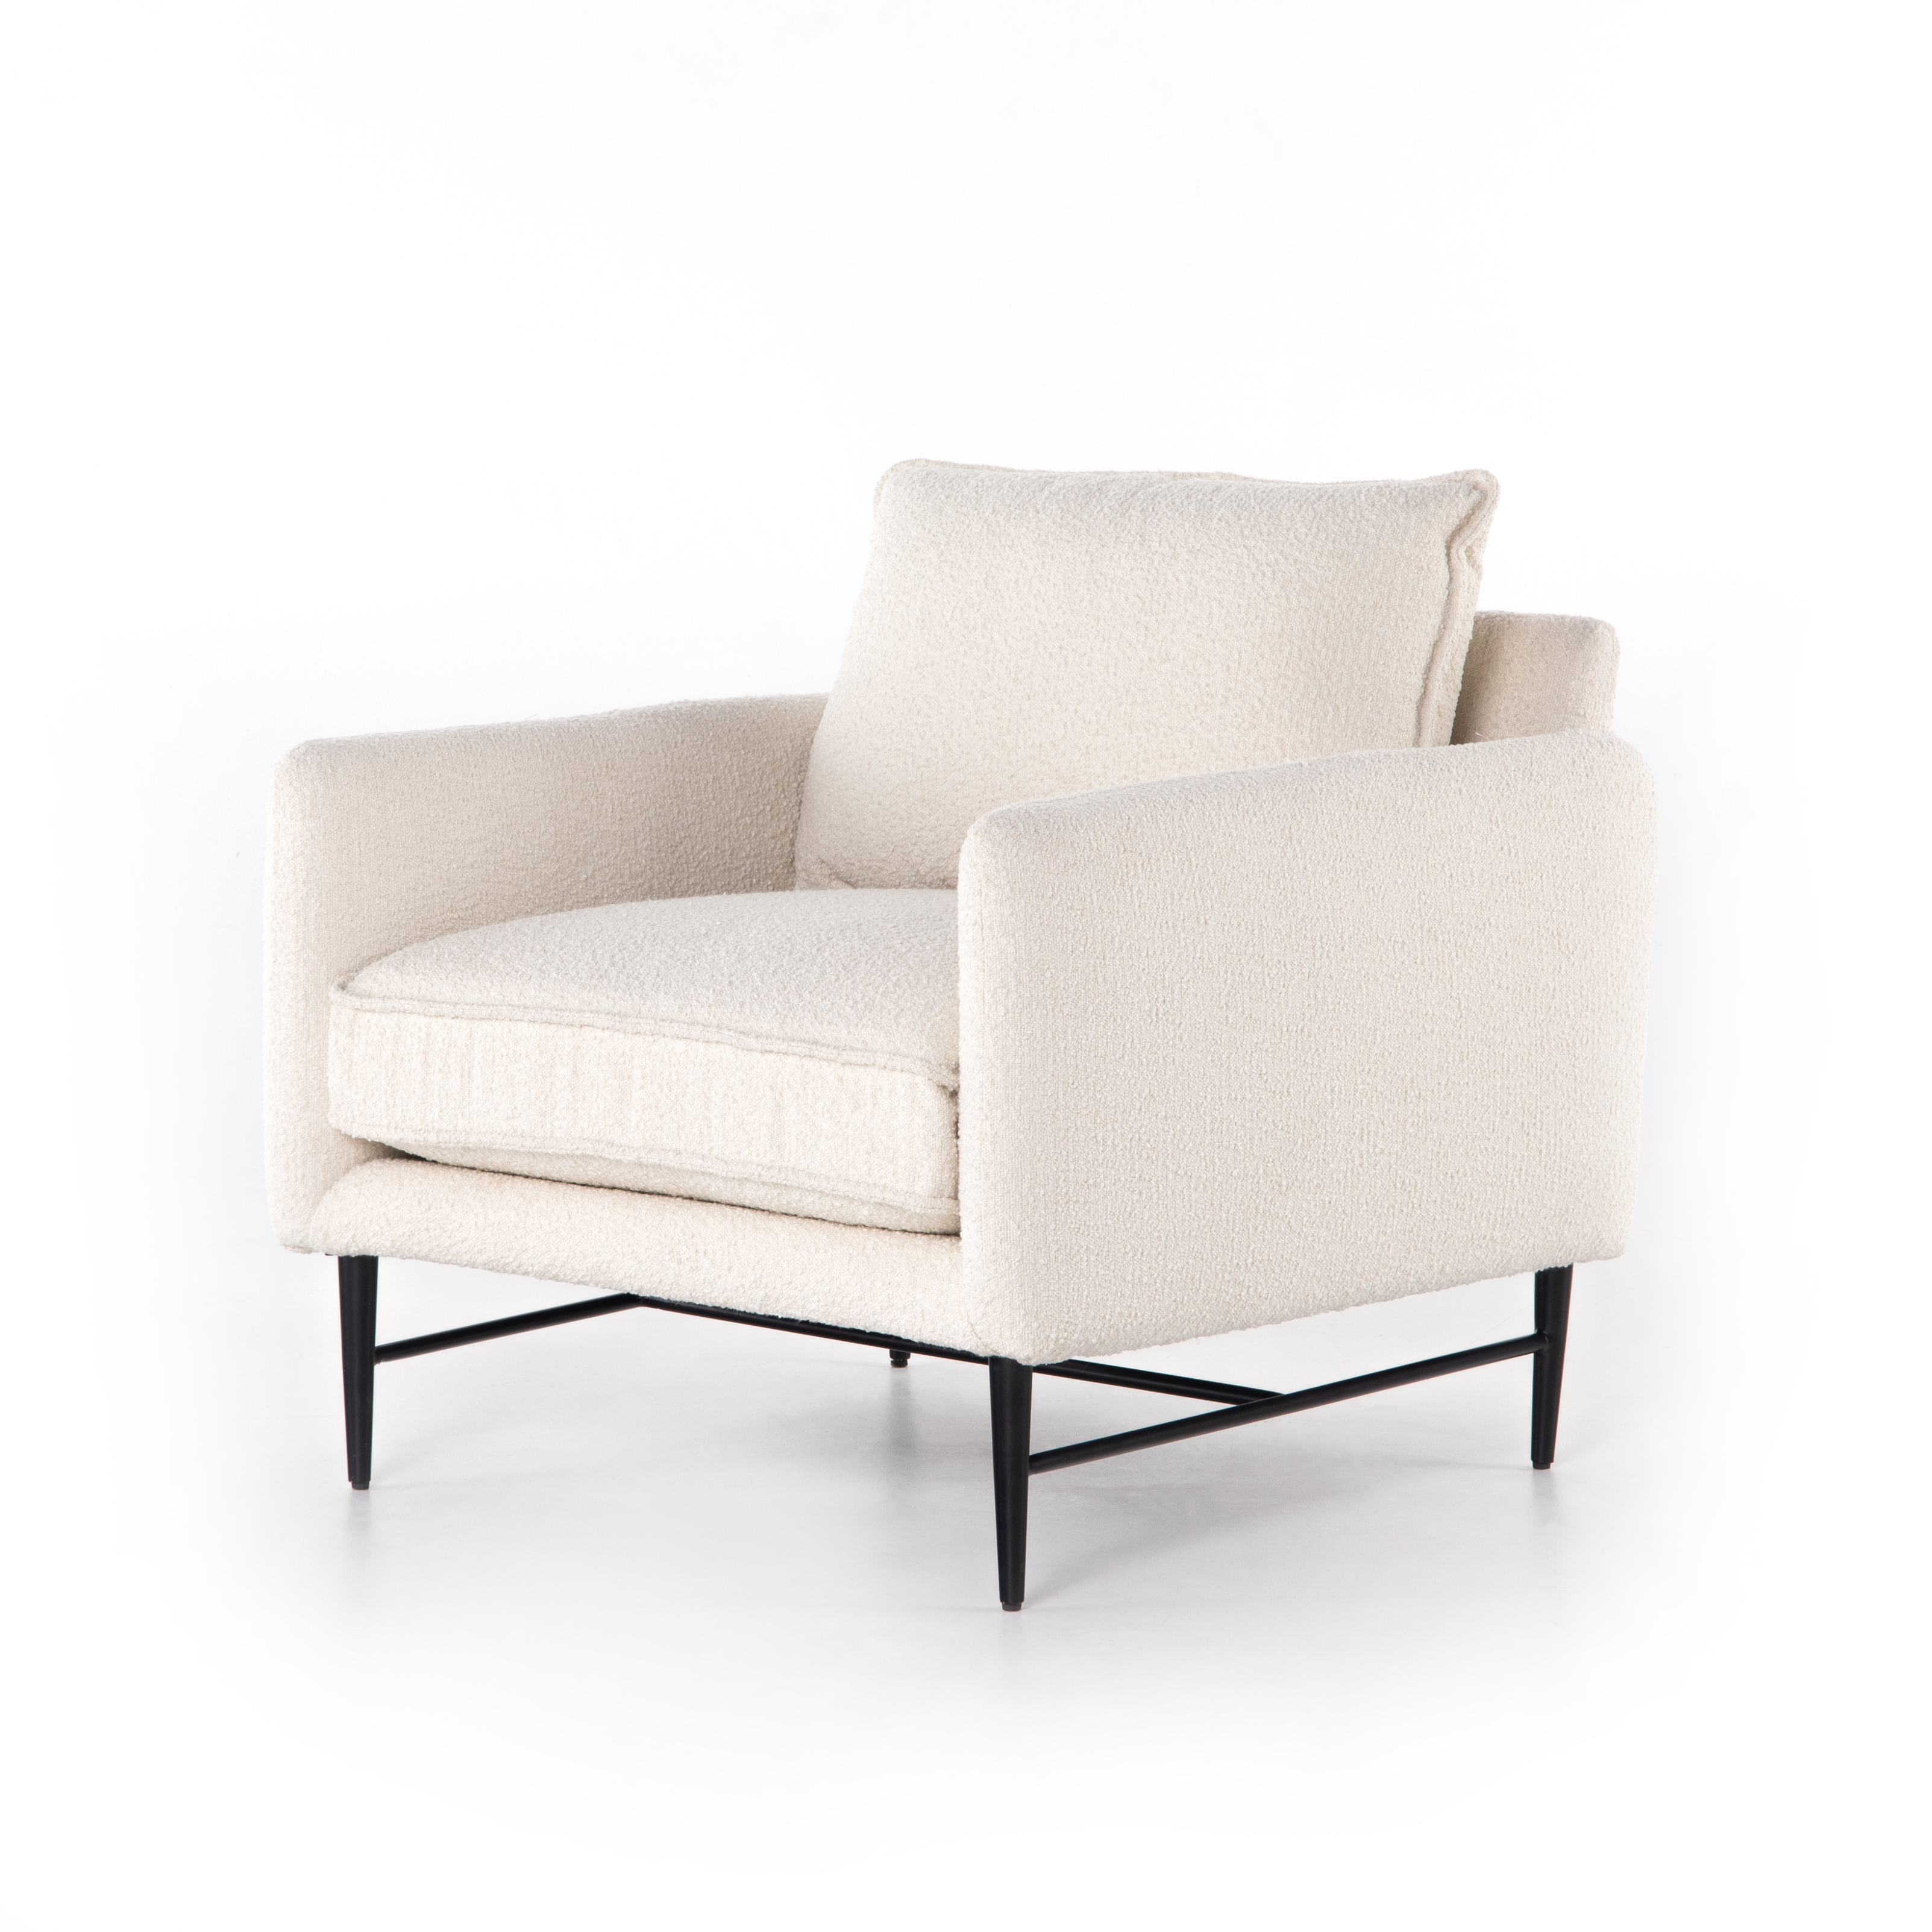 Easton Delaney Chair-Cabo-Home-Furniture-Seasalt-Home-Interiors